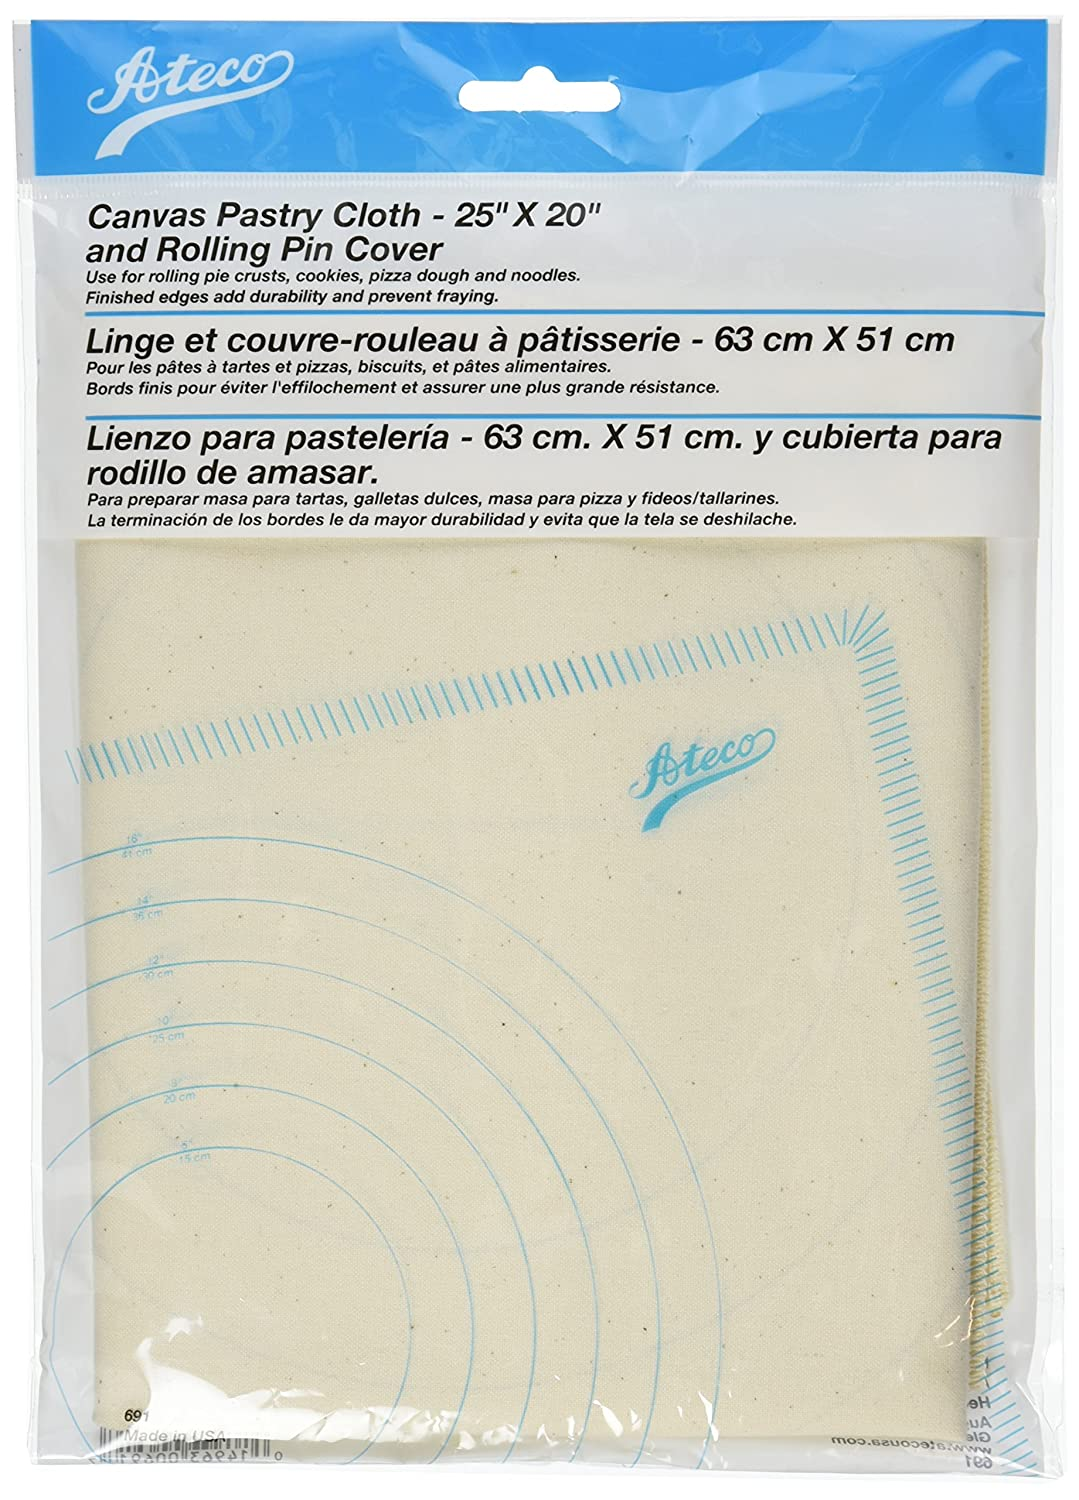 Ateco 691 Canvas Pastry Cloth and Rolling Pin Cover